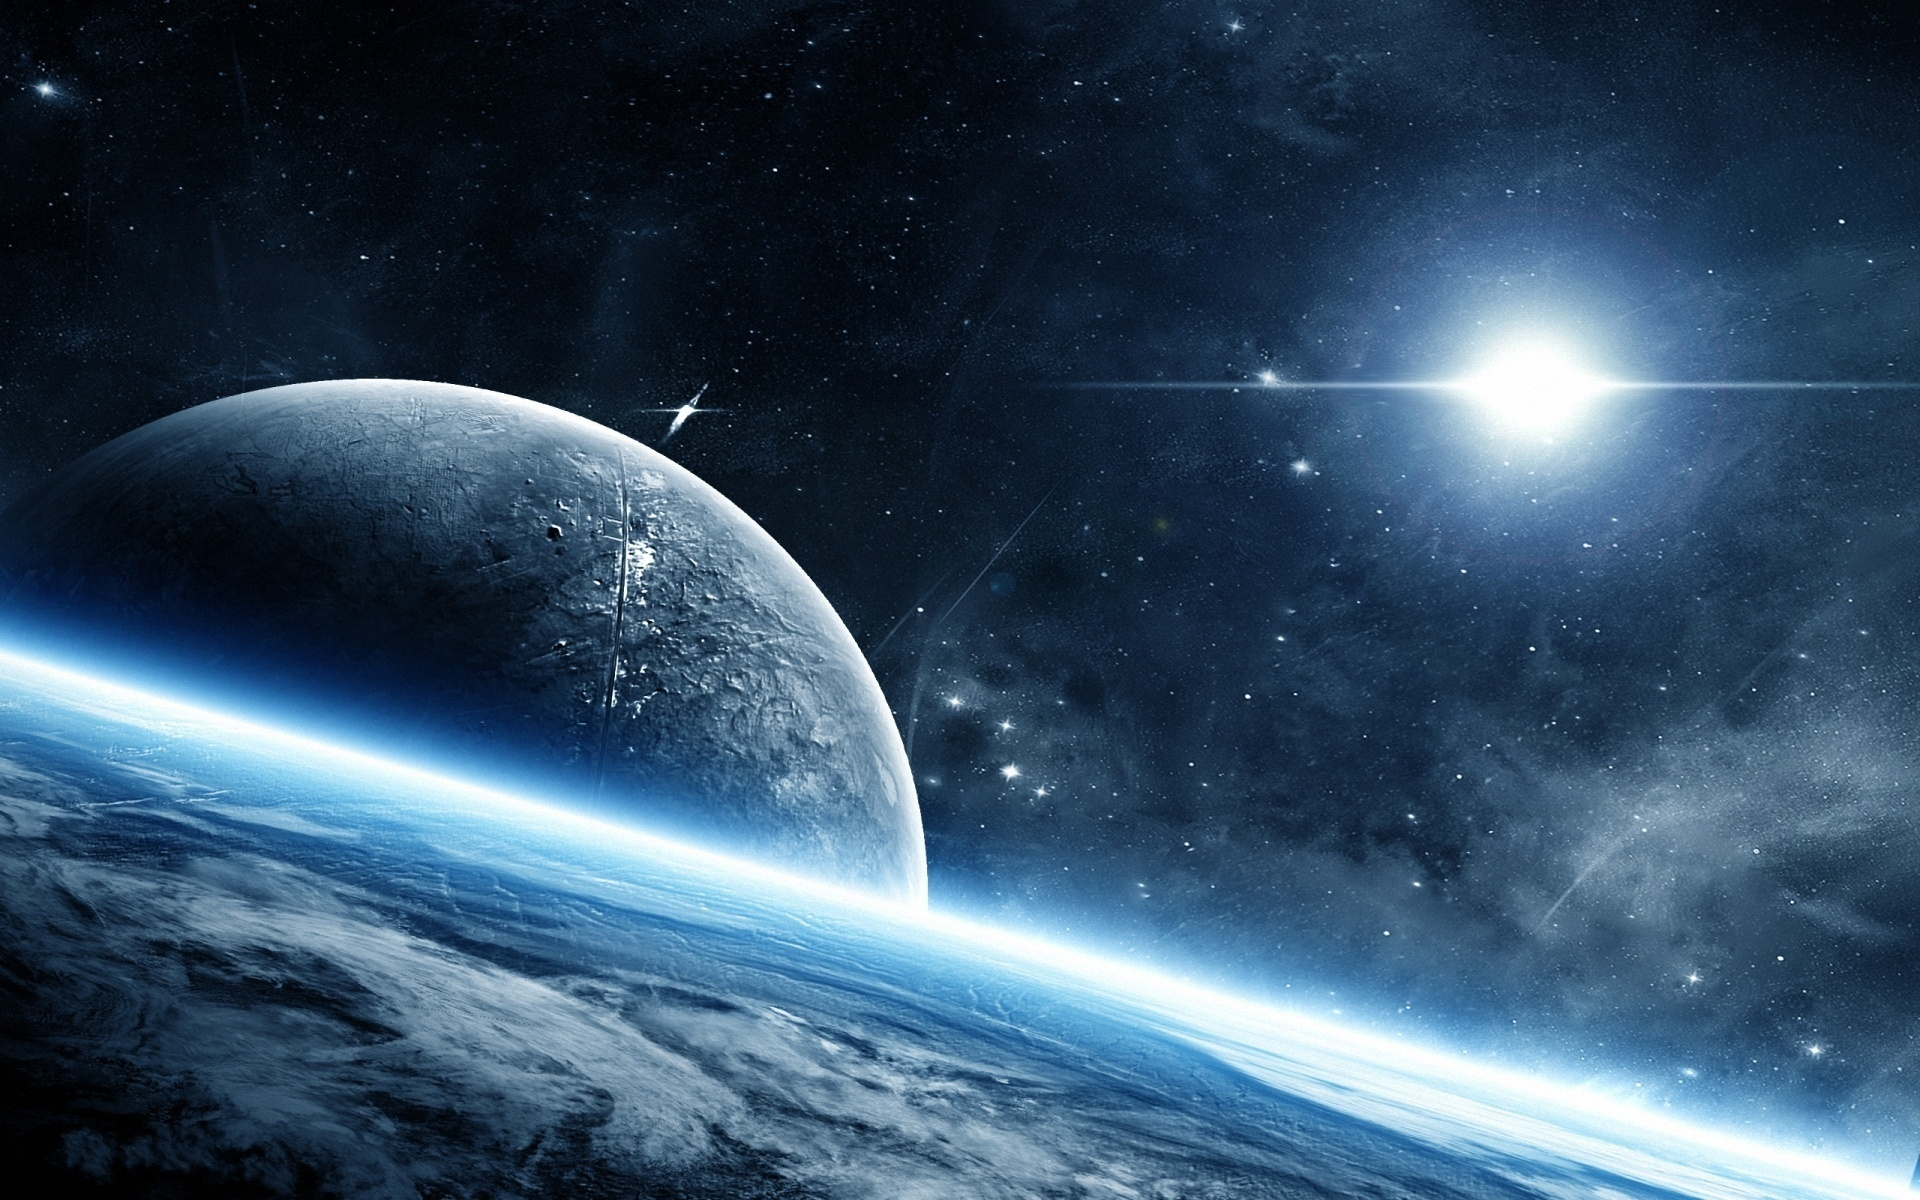 Photo stars planets space 1920x1200 - Space wallpaper 1920x1200 ...